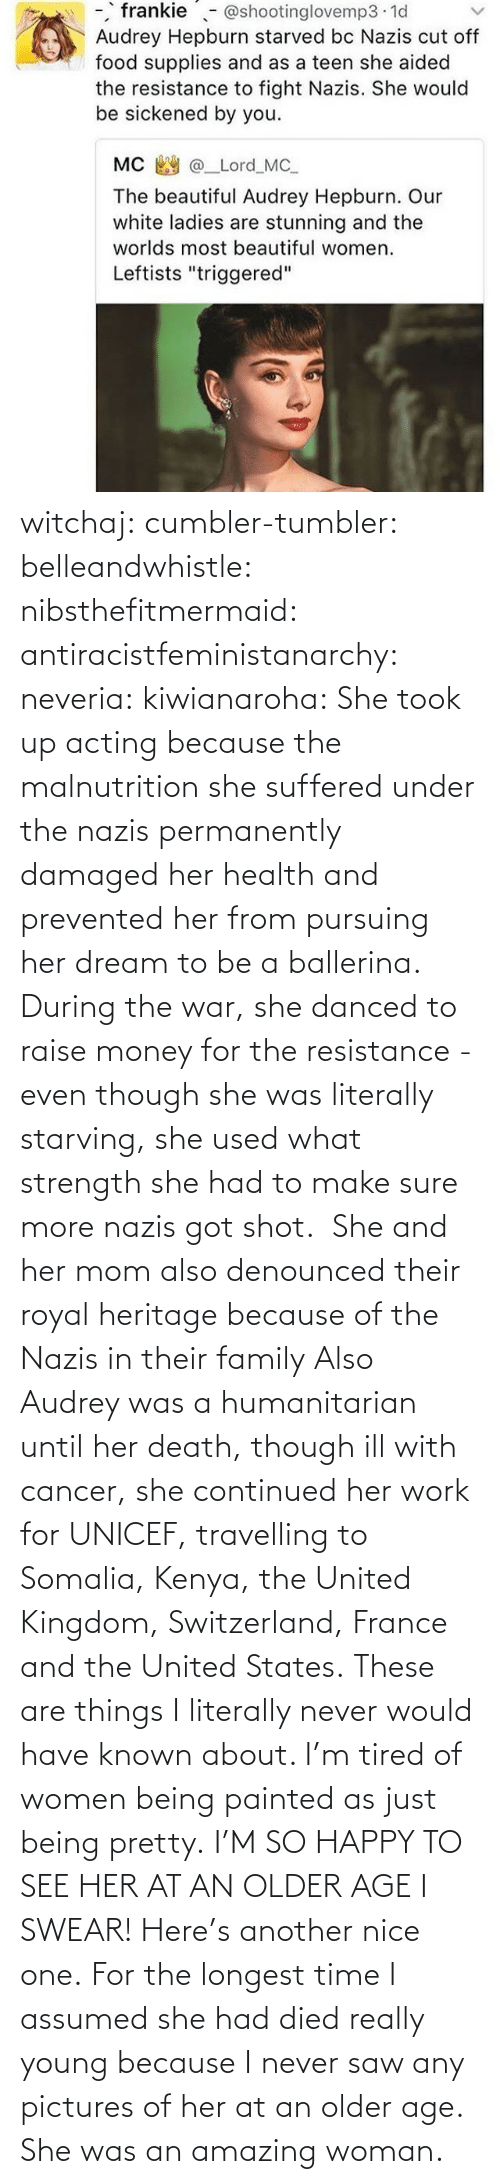 About: witchaj: cumbler-tumbler:  belleandwhistle:  nibsthefitmermaid:  antiracistfeministanarchy:  neveria:  kiwianaroha: She took up acting because the malnutrition she suffered under the nazis permanently damaged her health and prevented her from pursuing her dream to be a ballerina. During the war, she danced to raise money for the resistance - even though she was literally starving, she used what strength she had to make sure more nazis got shot.  She and her mom also denounced their royal heritage because of the Nazis in their family  Also Audrey was a humanitarian until her death, though ill with cancer, she continued her work for UNICEF, travelling to Somalia, Kenya, the United Kingdom, Switzerland, France and the United States.  These are things I literally never would have known about. I'm tired of women being painted as just being pretty.  I'M SO HAPPY TO SEE HER AT AN OLDER AGE I SWEAR!  Here's another nice one.   For the longest time I assumed she had died really young because I never saw any pictures of her at an older age.  She was an amazing woman.